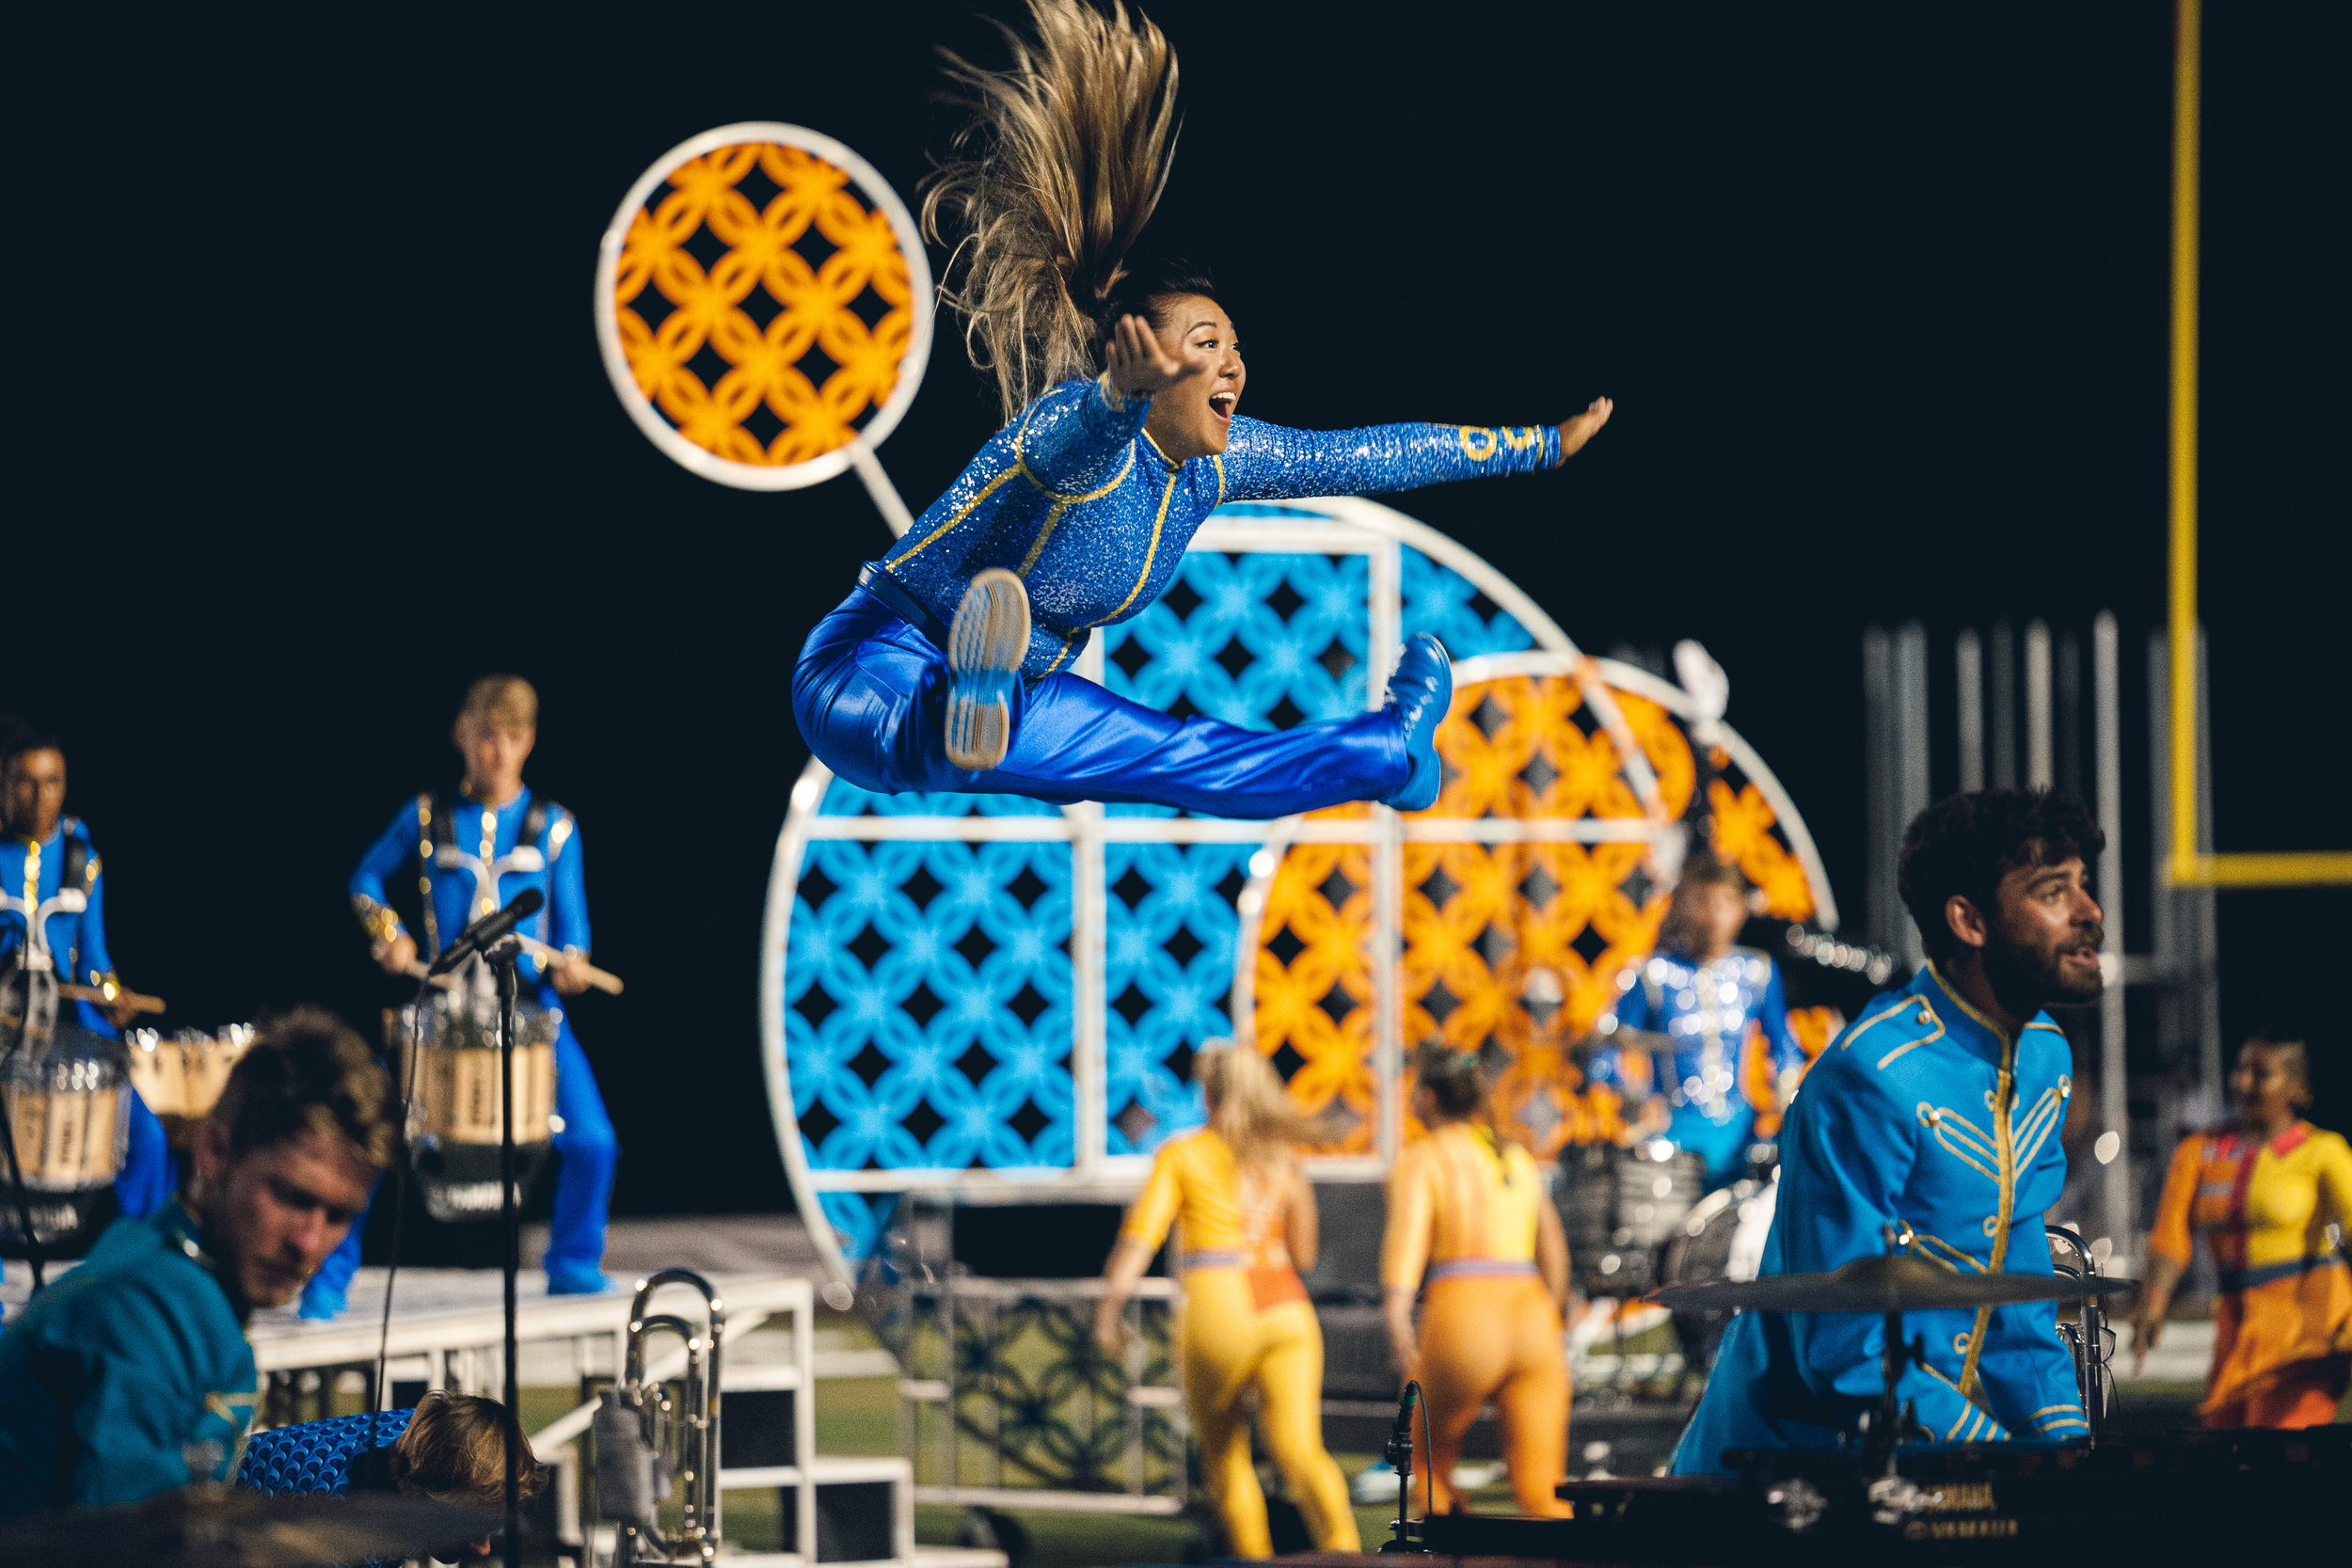 A performer enjoying a performance of  The BLUECOATS  in Kenosha, WI.